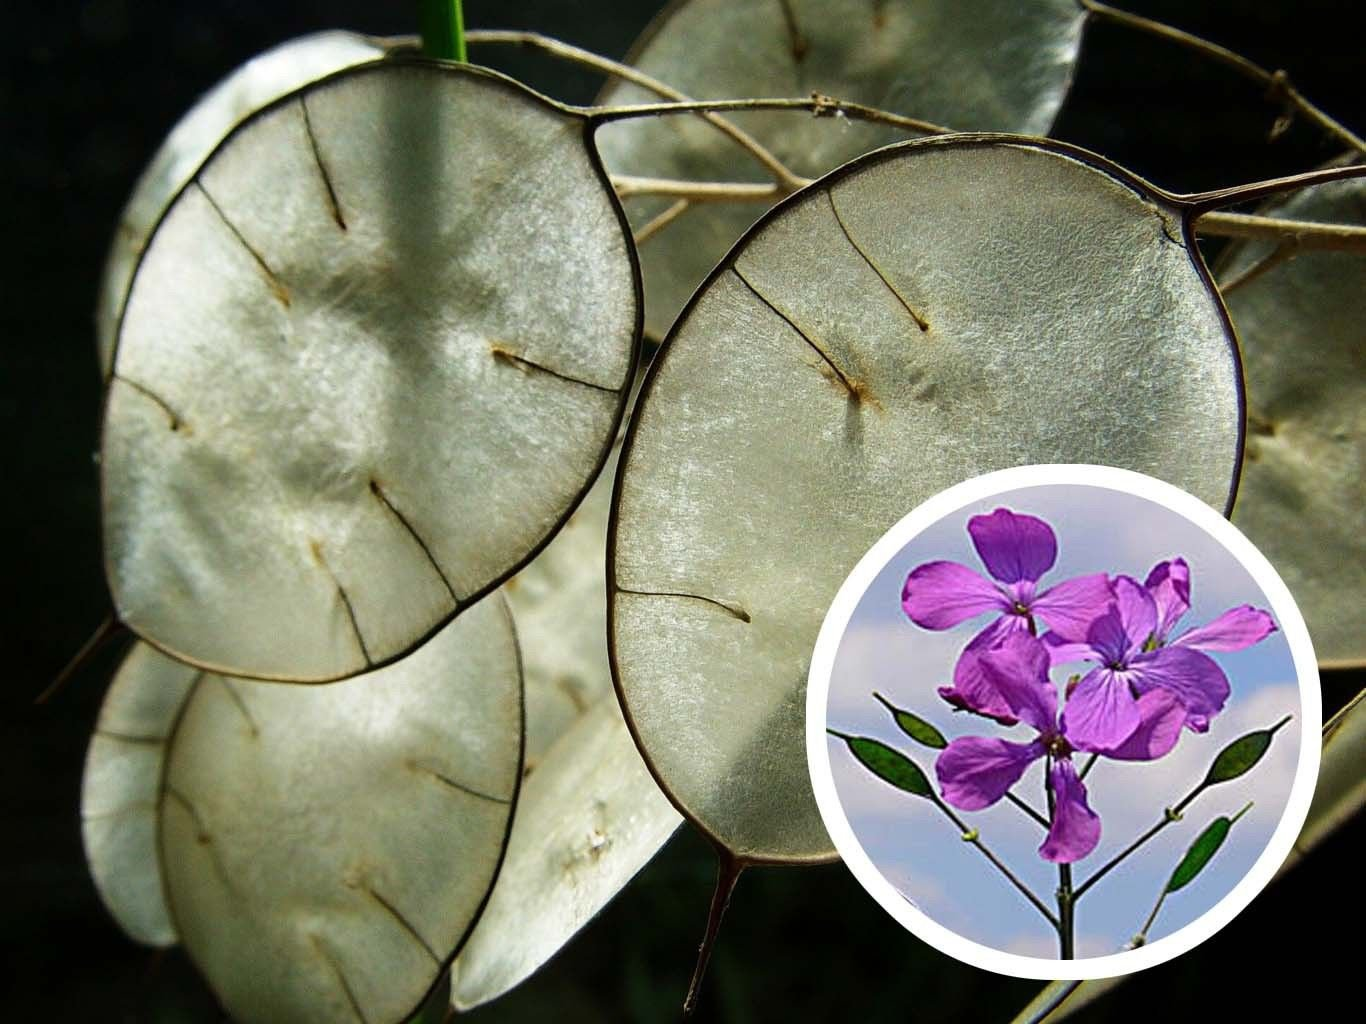 Silver Dollar Lunaria Biennis 50 seeds Money plant * Showy * *SHIPPING FROM US* CombSH J14